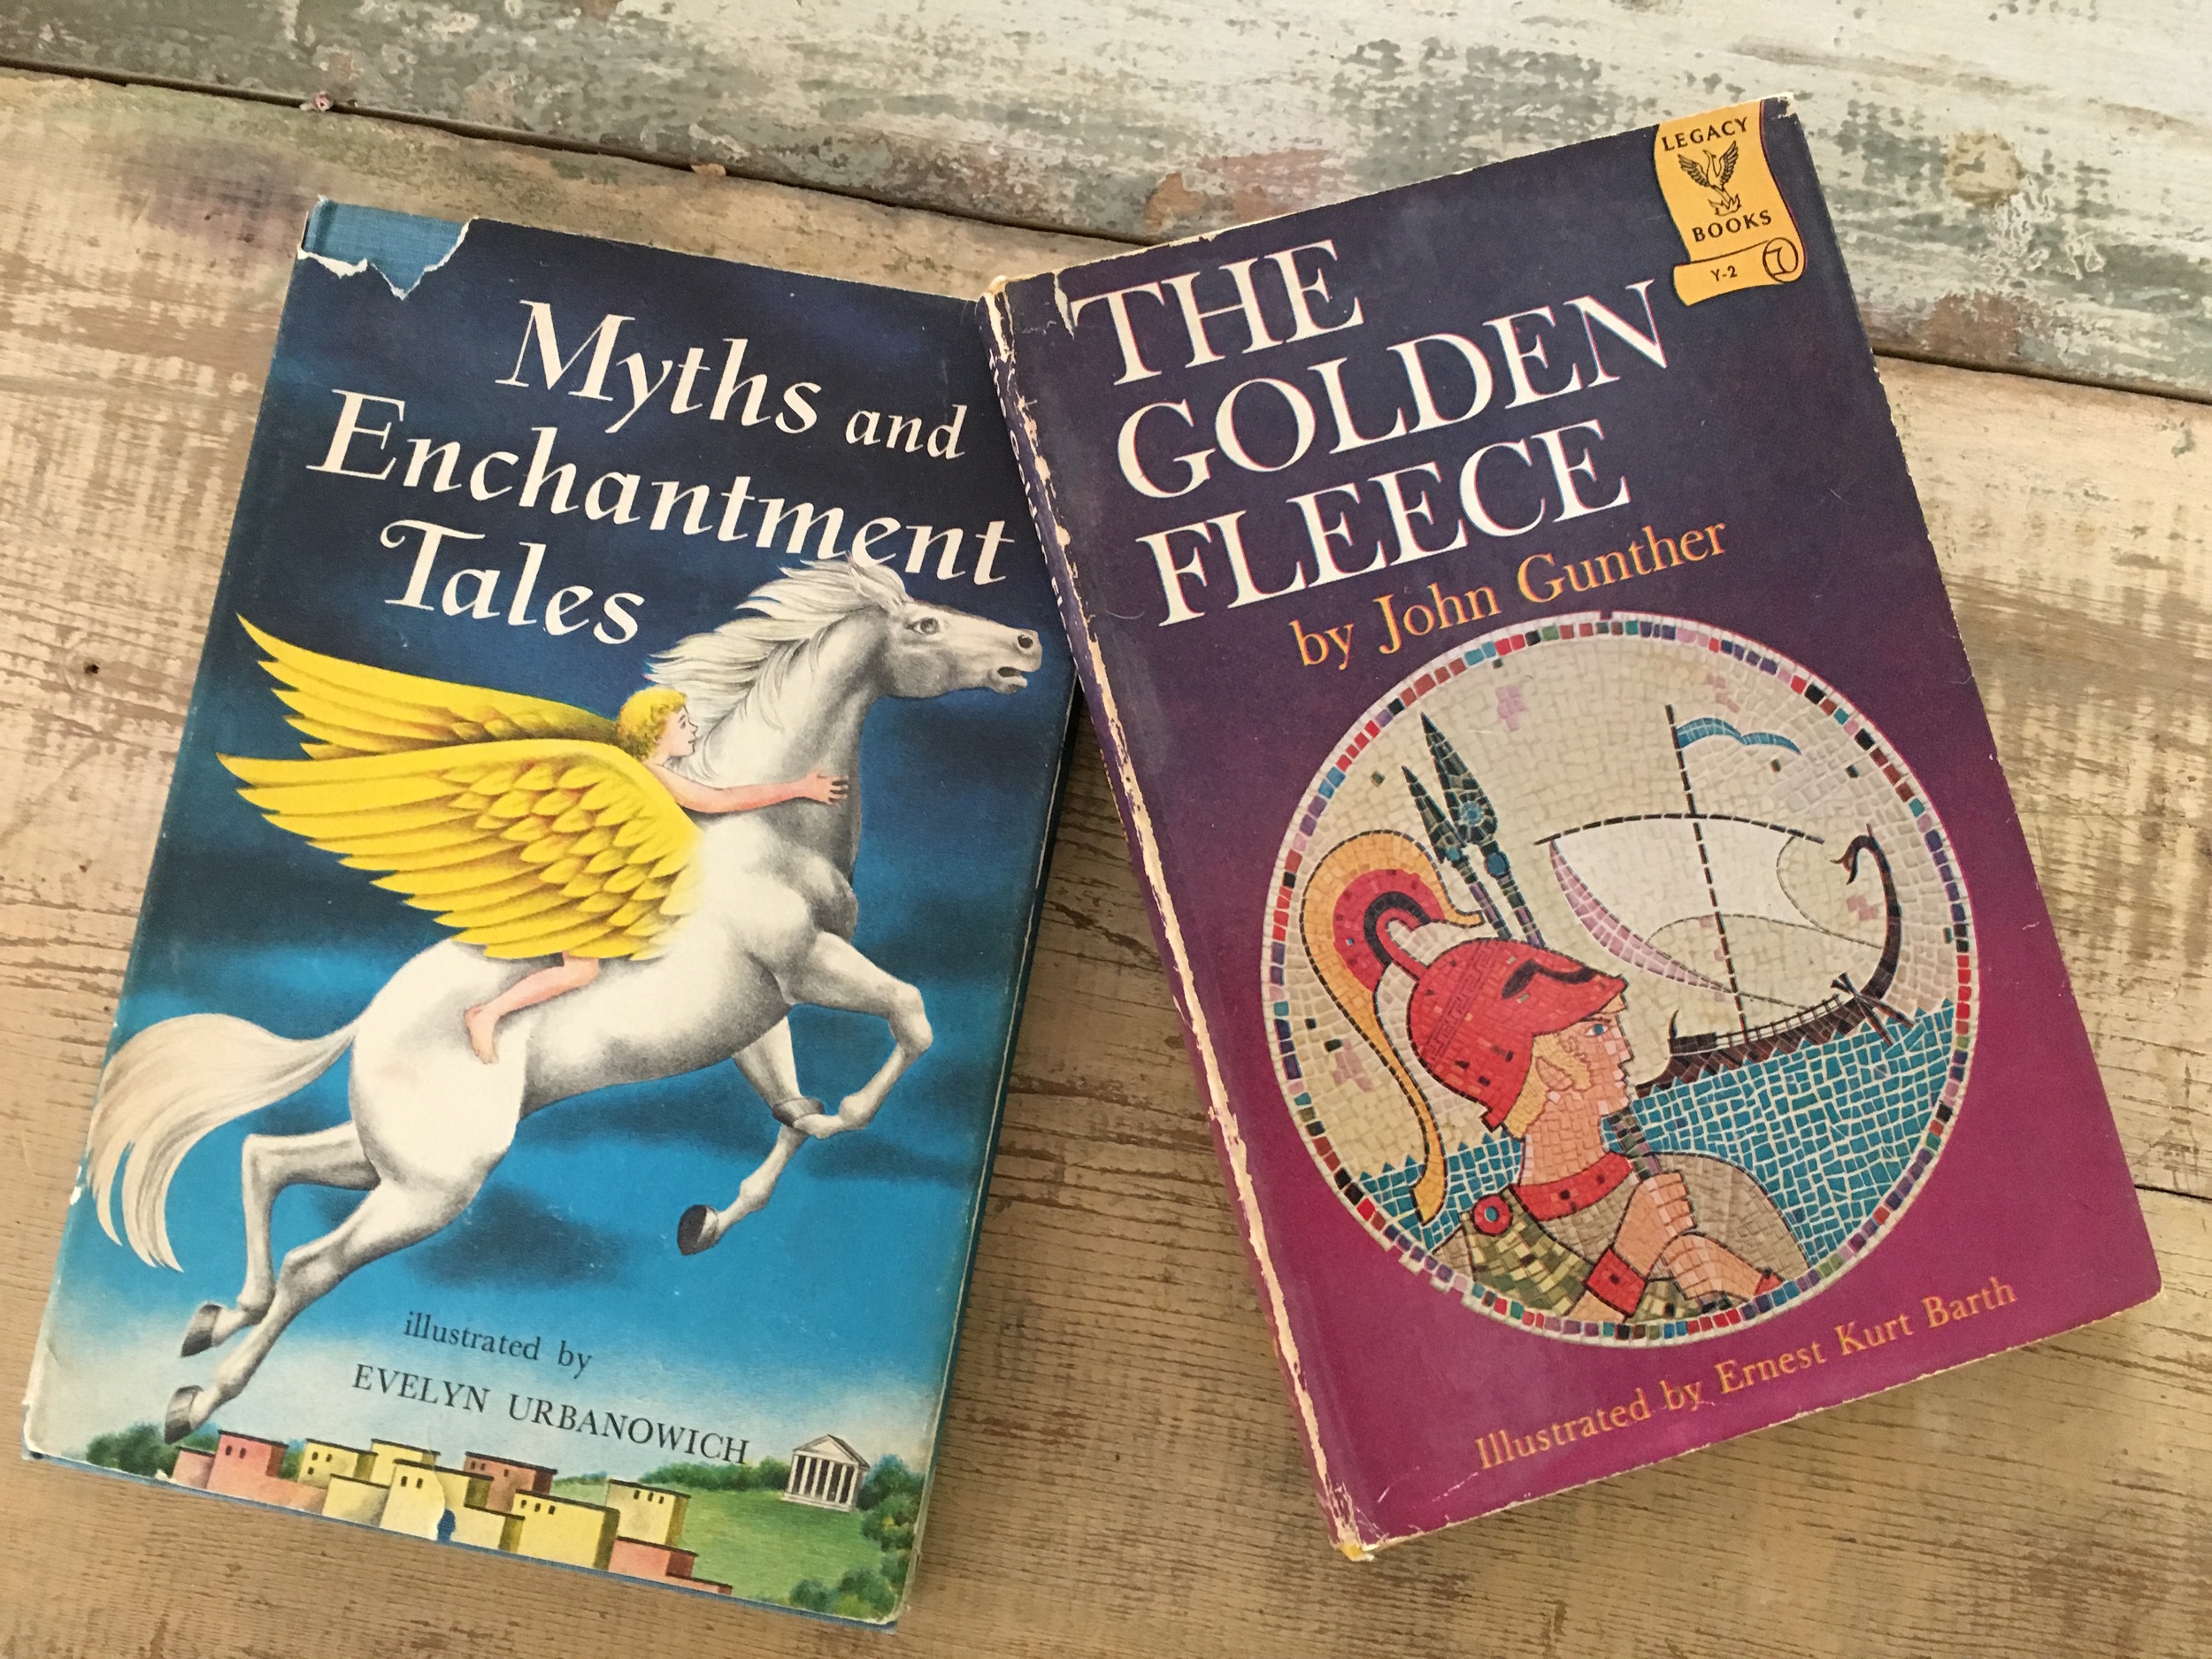 When I was 10, I received these two books, birthday gifts from my parents.